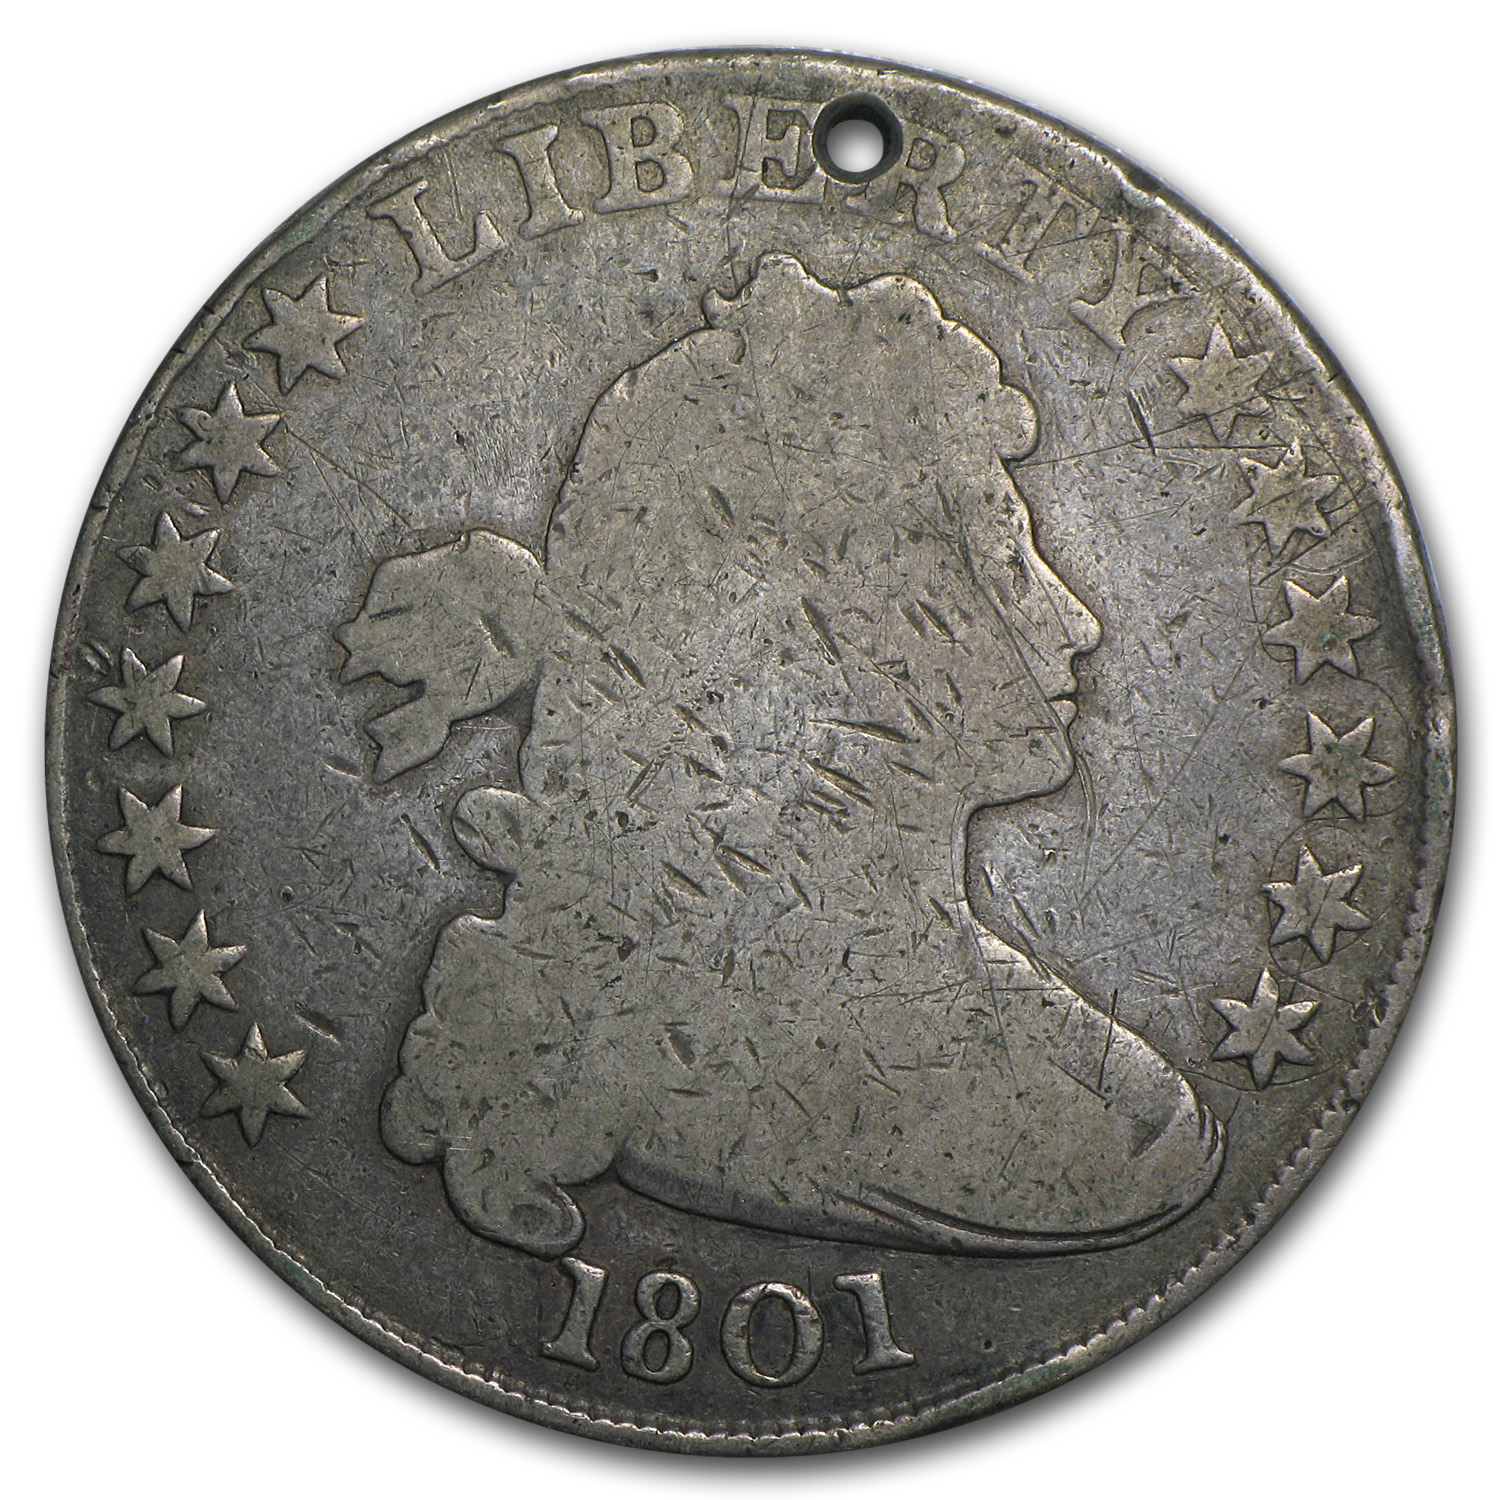 1801 Bust Dollar Very Good (Holed)